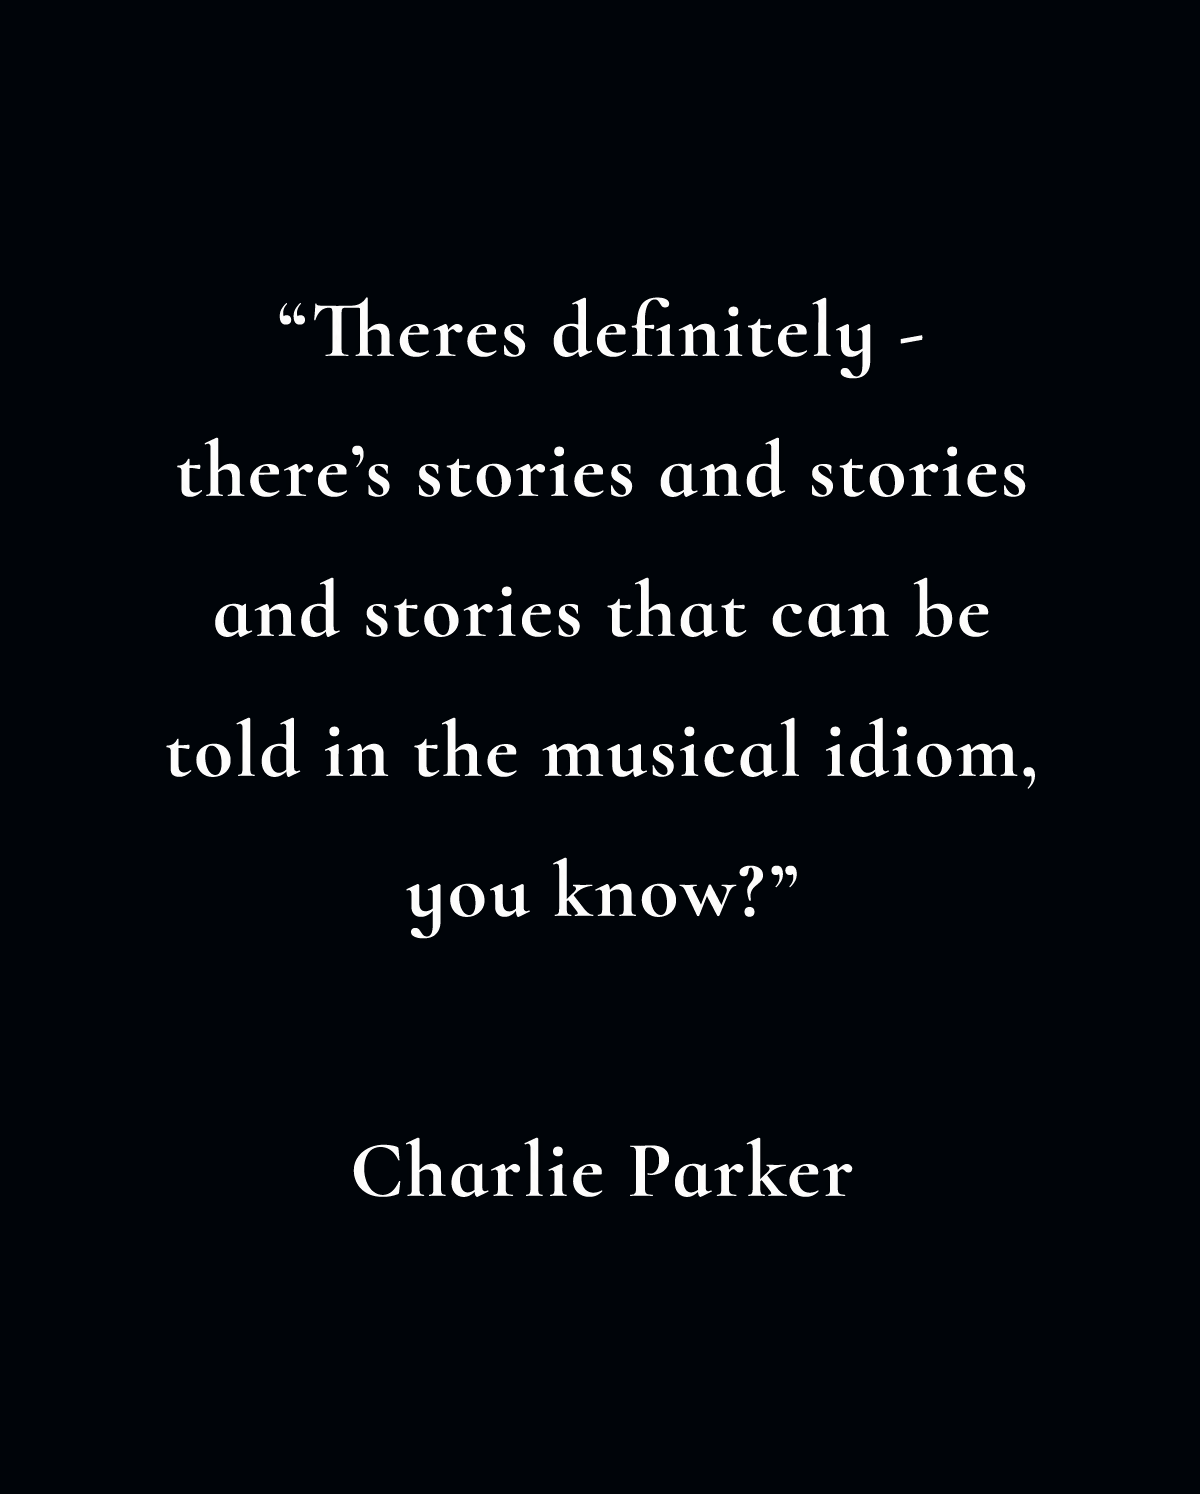 Theres definitely - there's stories and stories and stories that can be told in the musical idiom, you know? - Charlie Parker